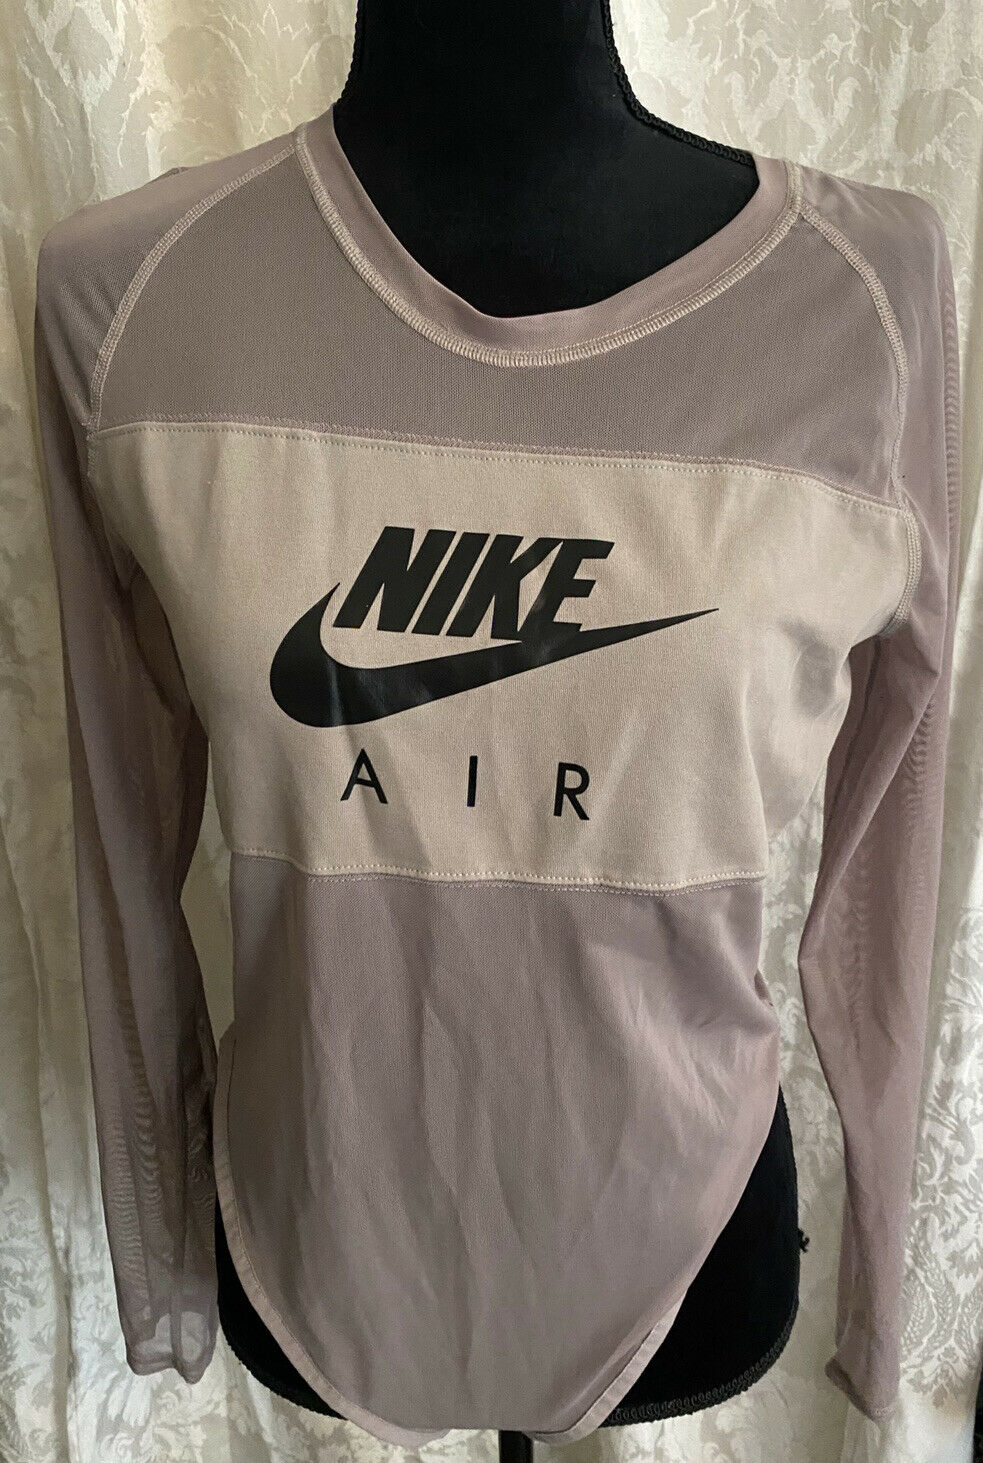 NWOT Nike Air Women's Mesh Gray Stretchy Body Suit Size Large